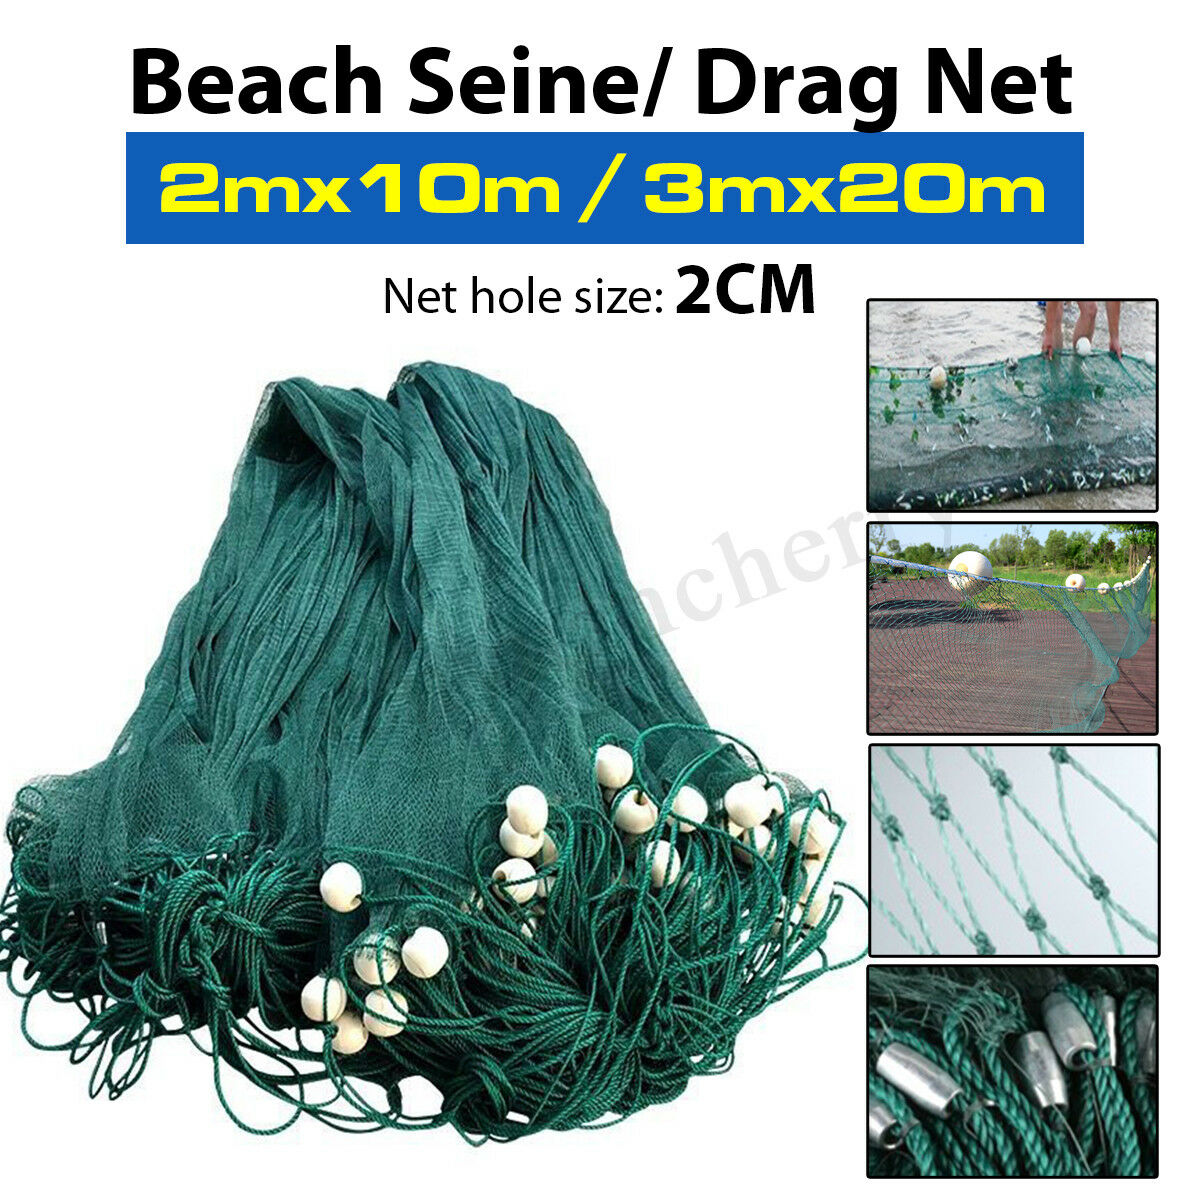 Fishing  Drag Net 2x10M 3x20M Beach Seine Nylon 2cm Mesh Floats & Sinkers Green